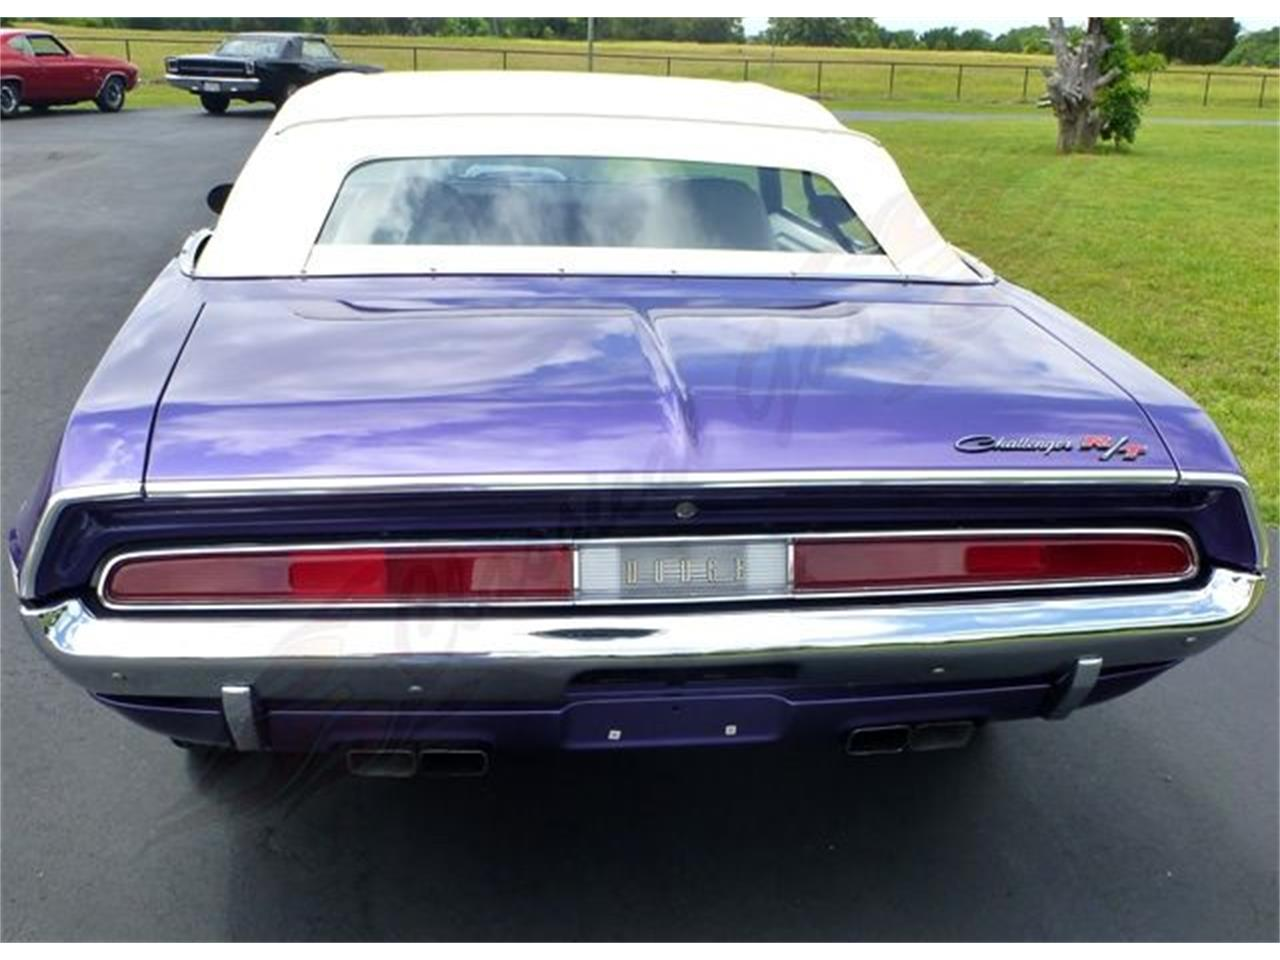 Large Picture of 1970 Dodge Challenger R/T located in Texas Offered by Classical Gas Enterprises - LTOP